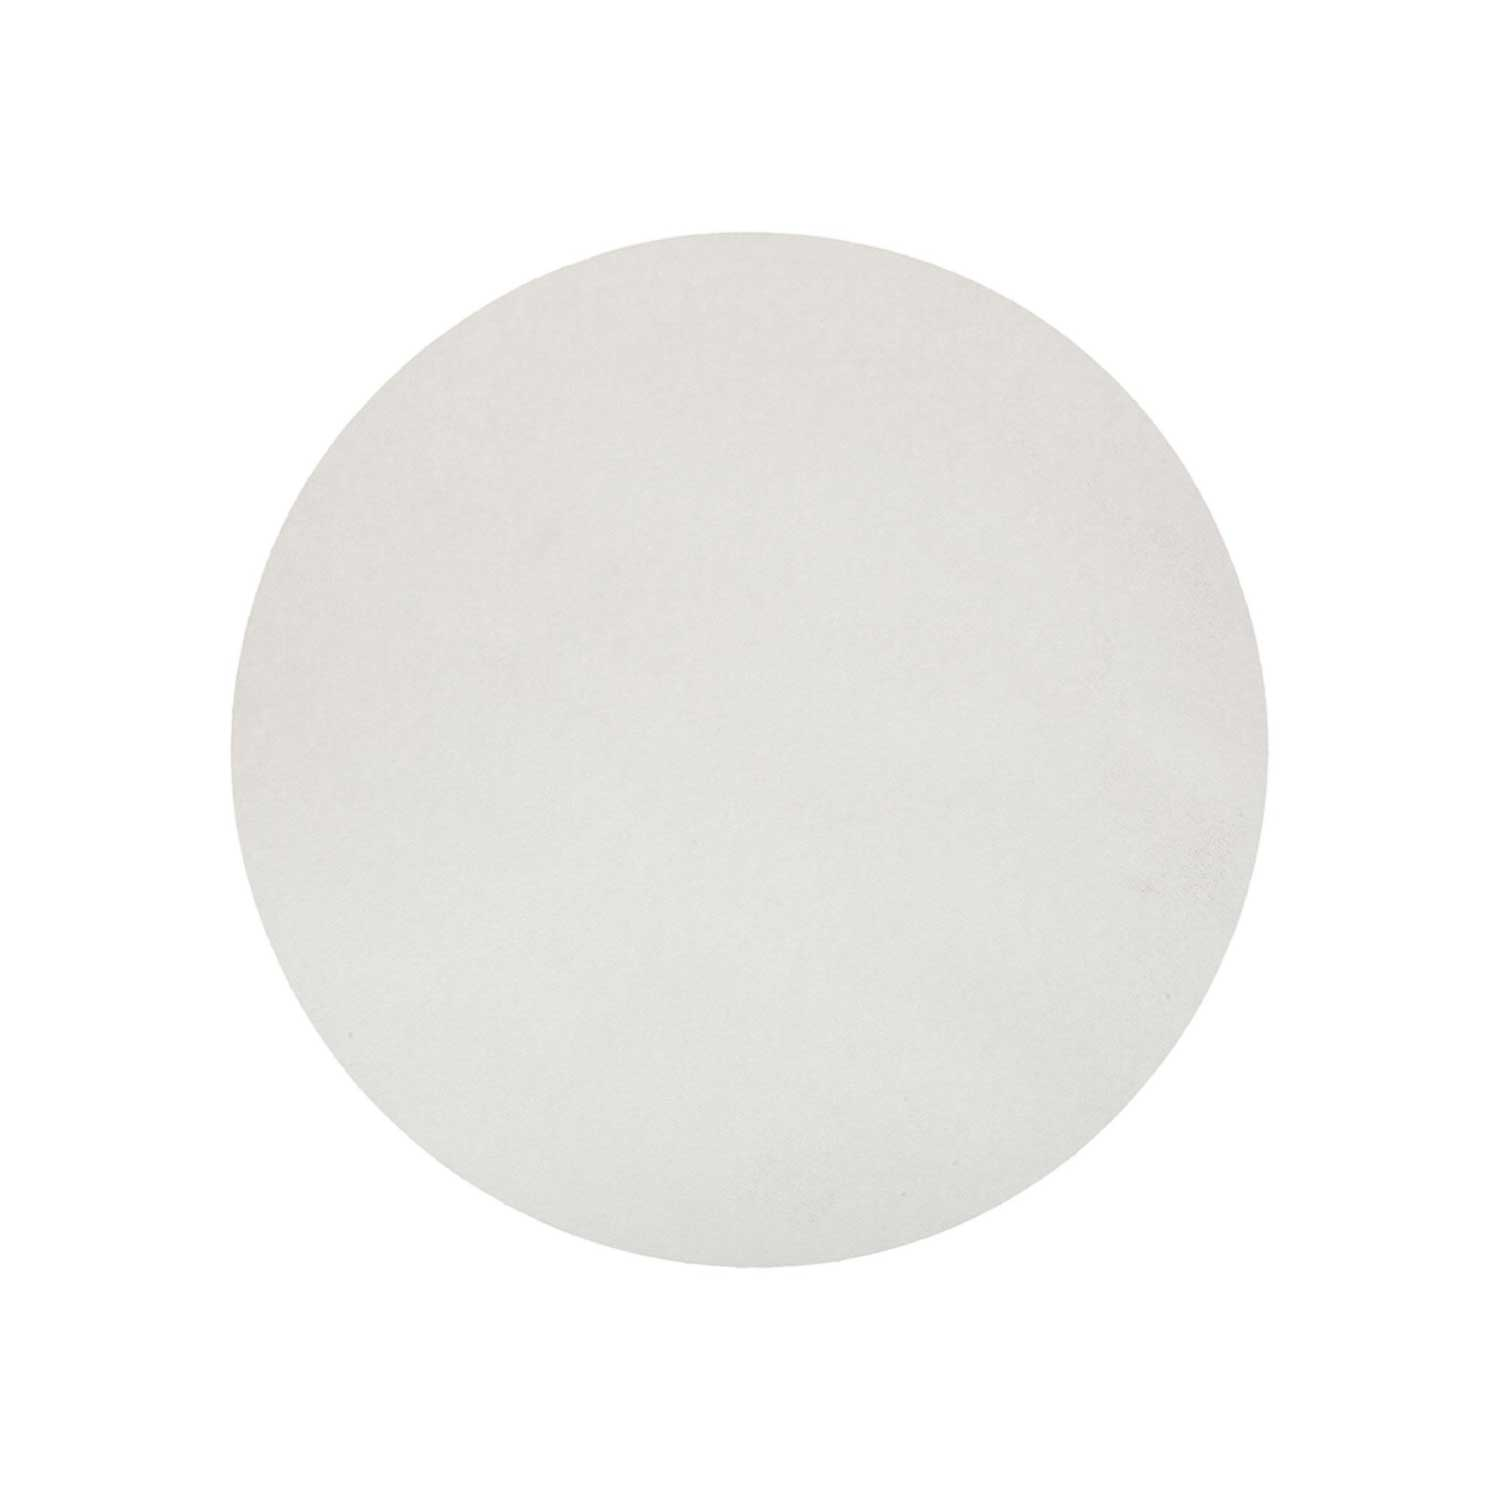 Filter Paper From Lab Nerd Shop Vacuum Filtration Lab